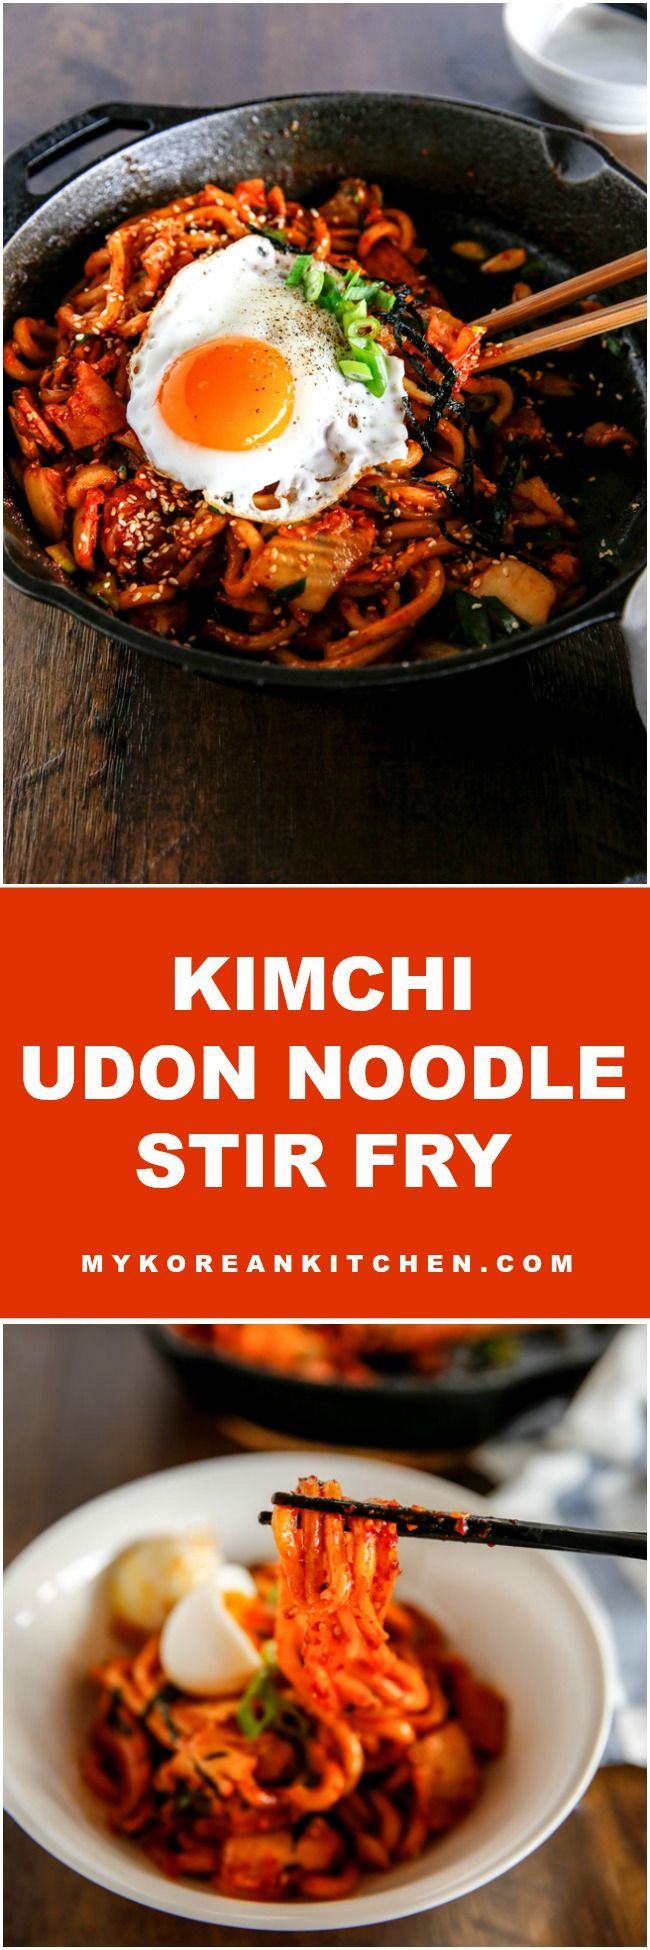 15 minutes Kimchi Udon Noodle Stir Fry. This will become your new favourite noodle dish!